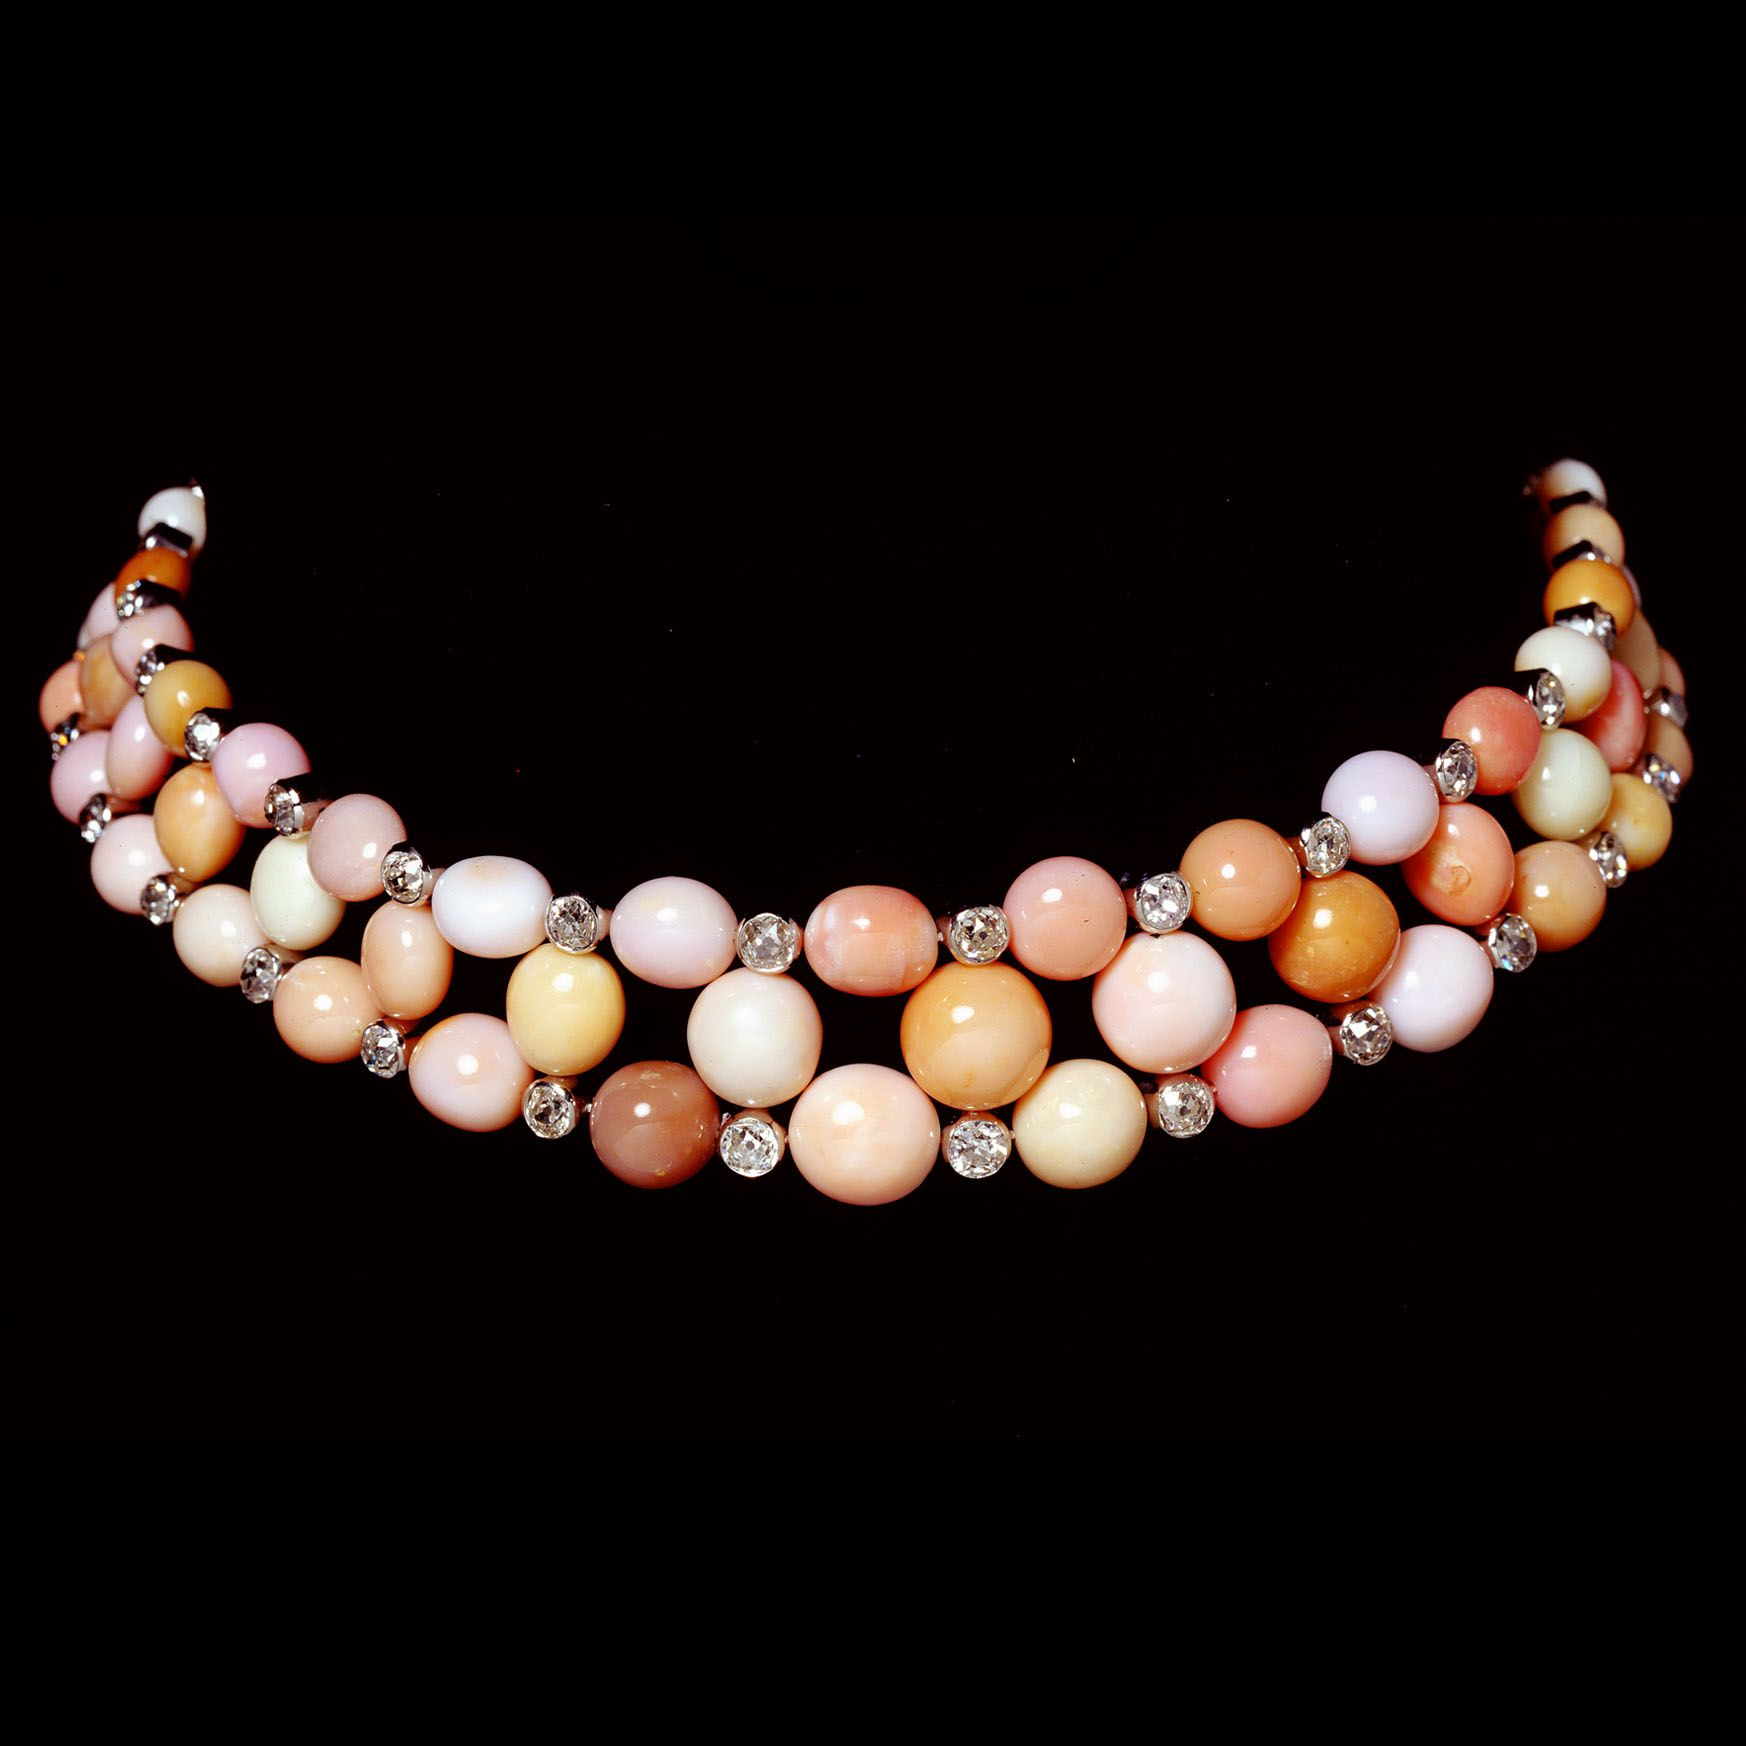 Couch Pearl Choker Faerber Collection Rare Antique Jewellery